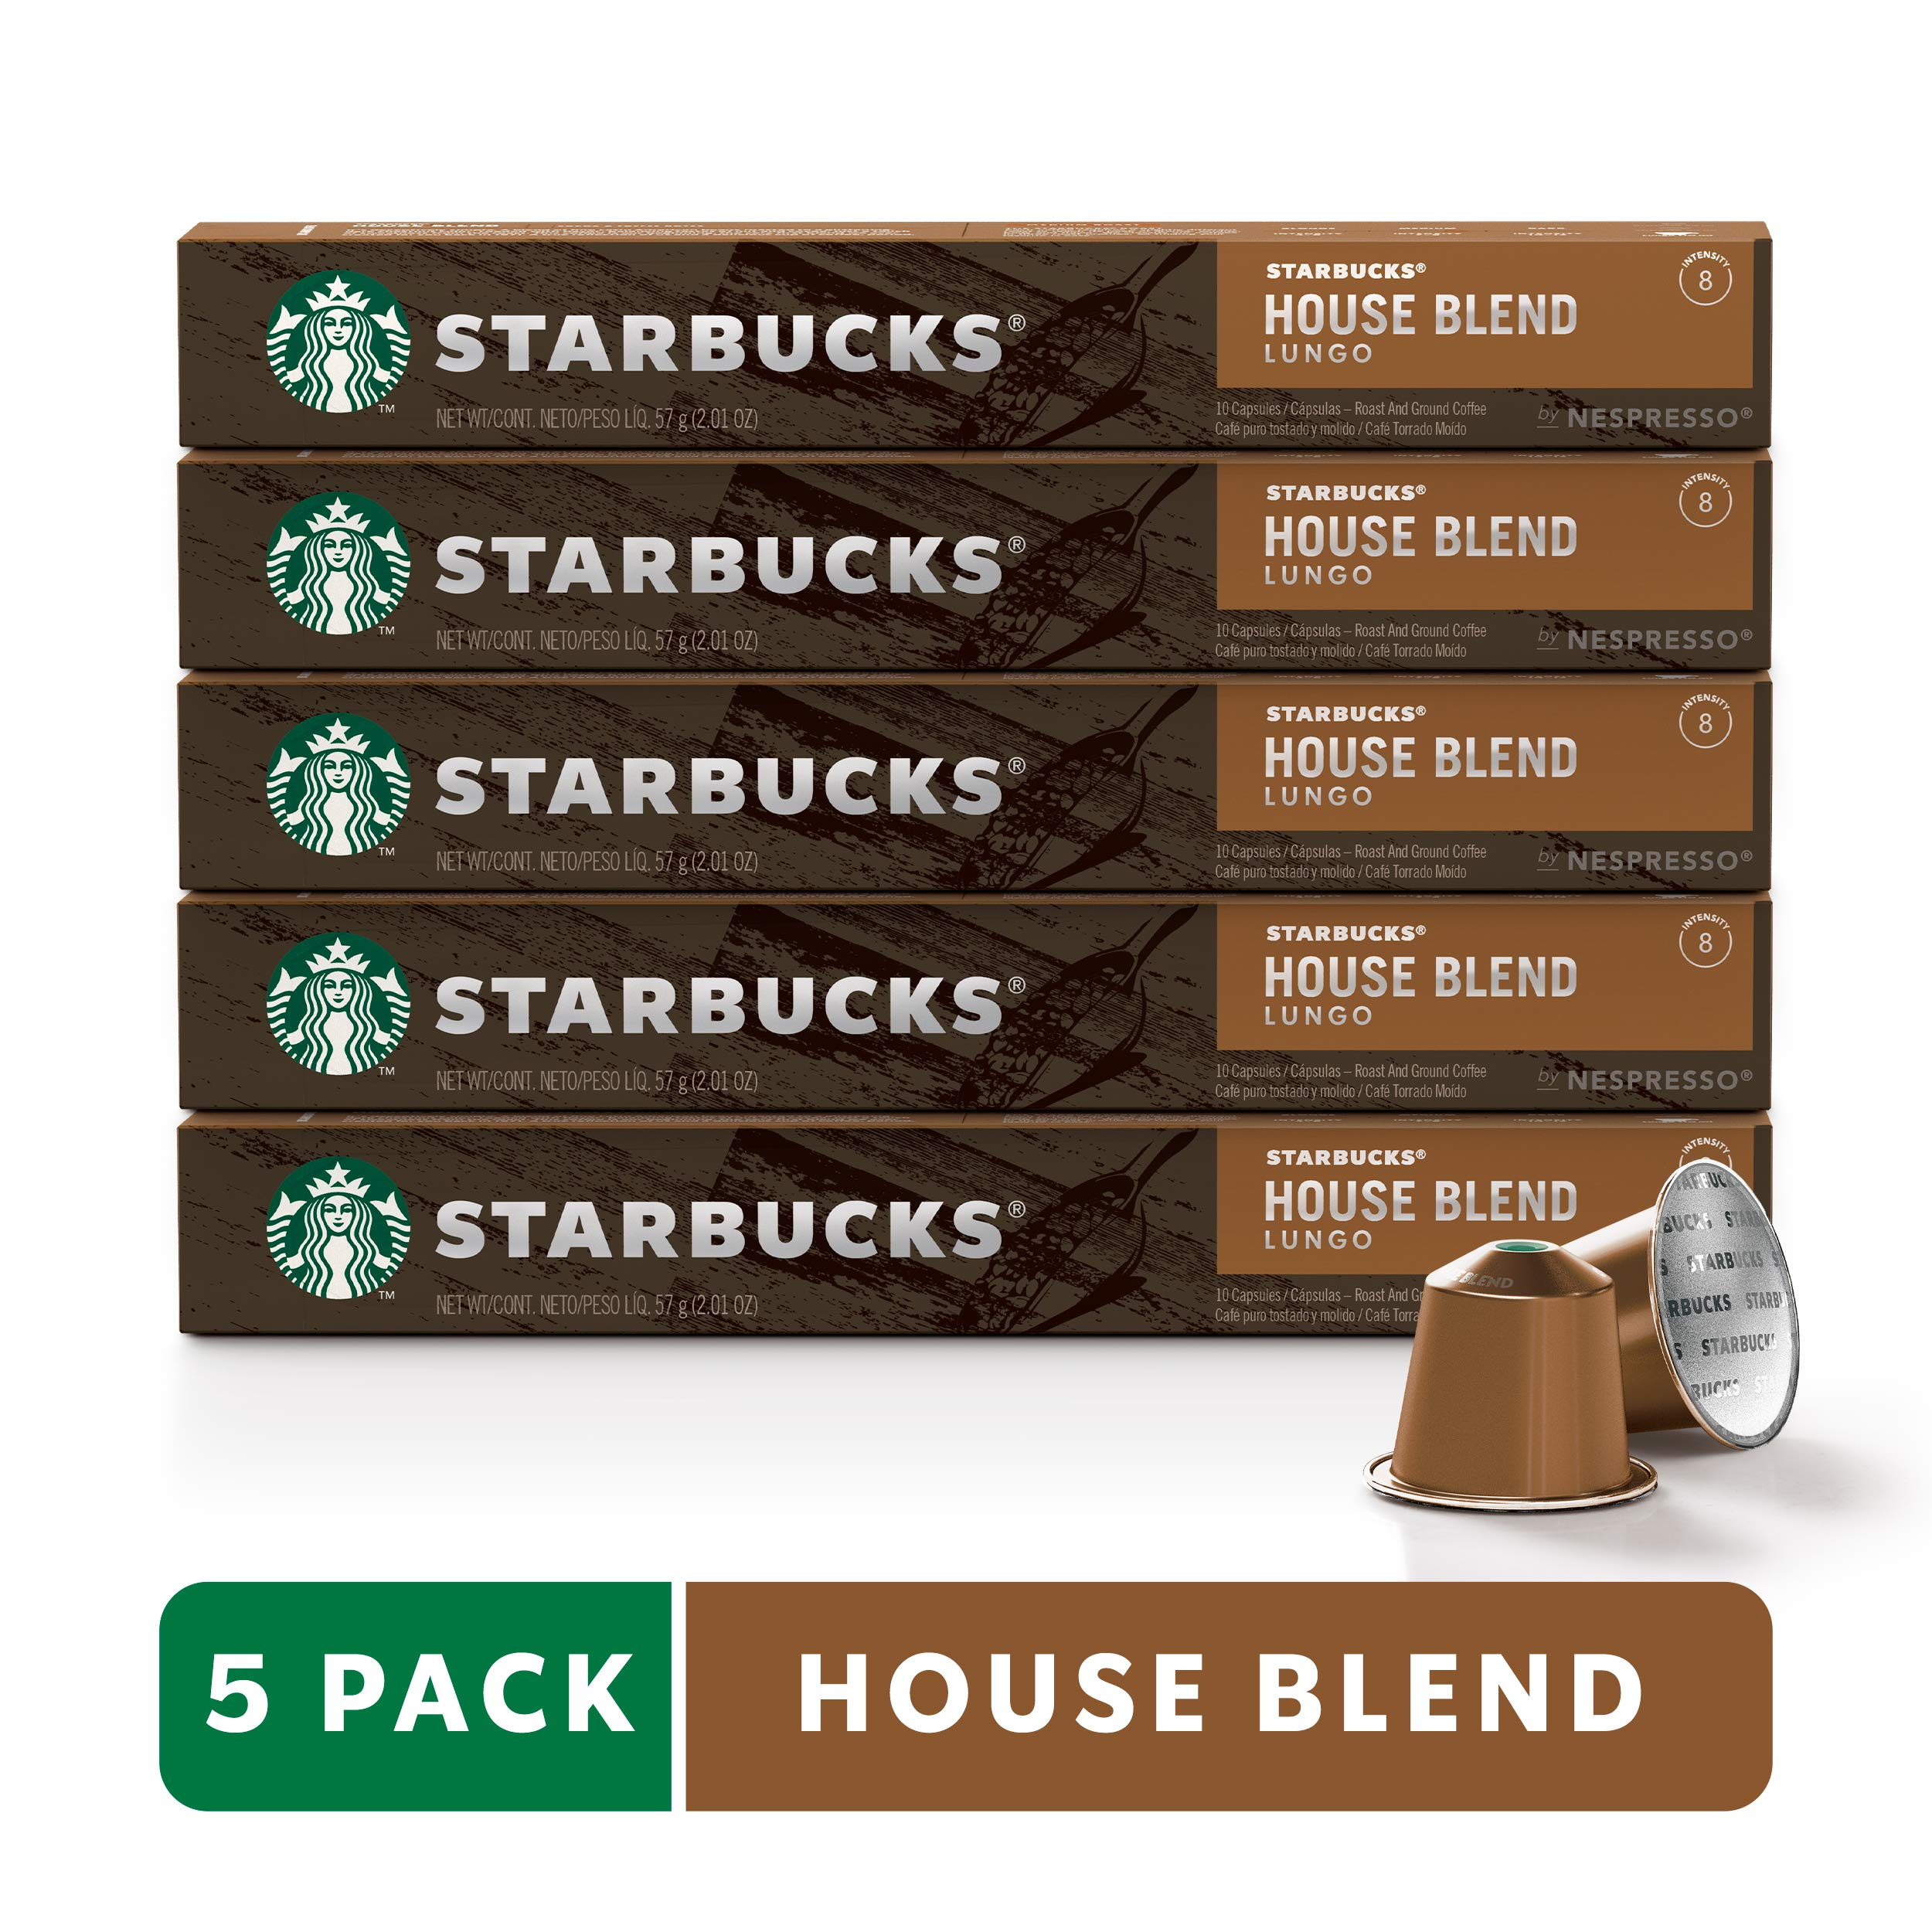 Starbucks by Nespresso, House Blend (50-count single serve capsules, compatible with Nespresso Original Line System) by Starbucks for Nespresso (Image #1)